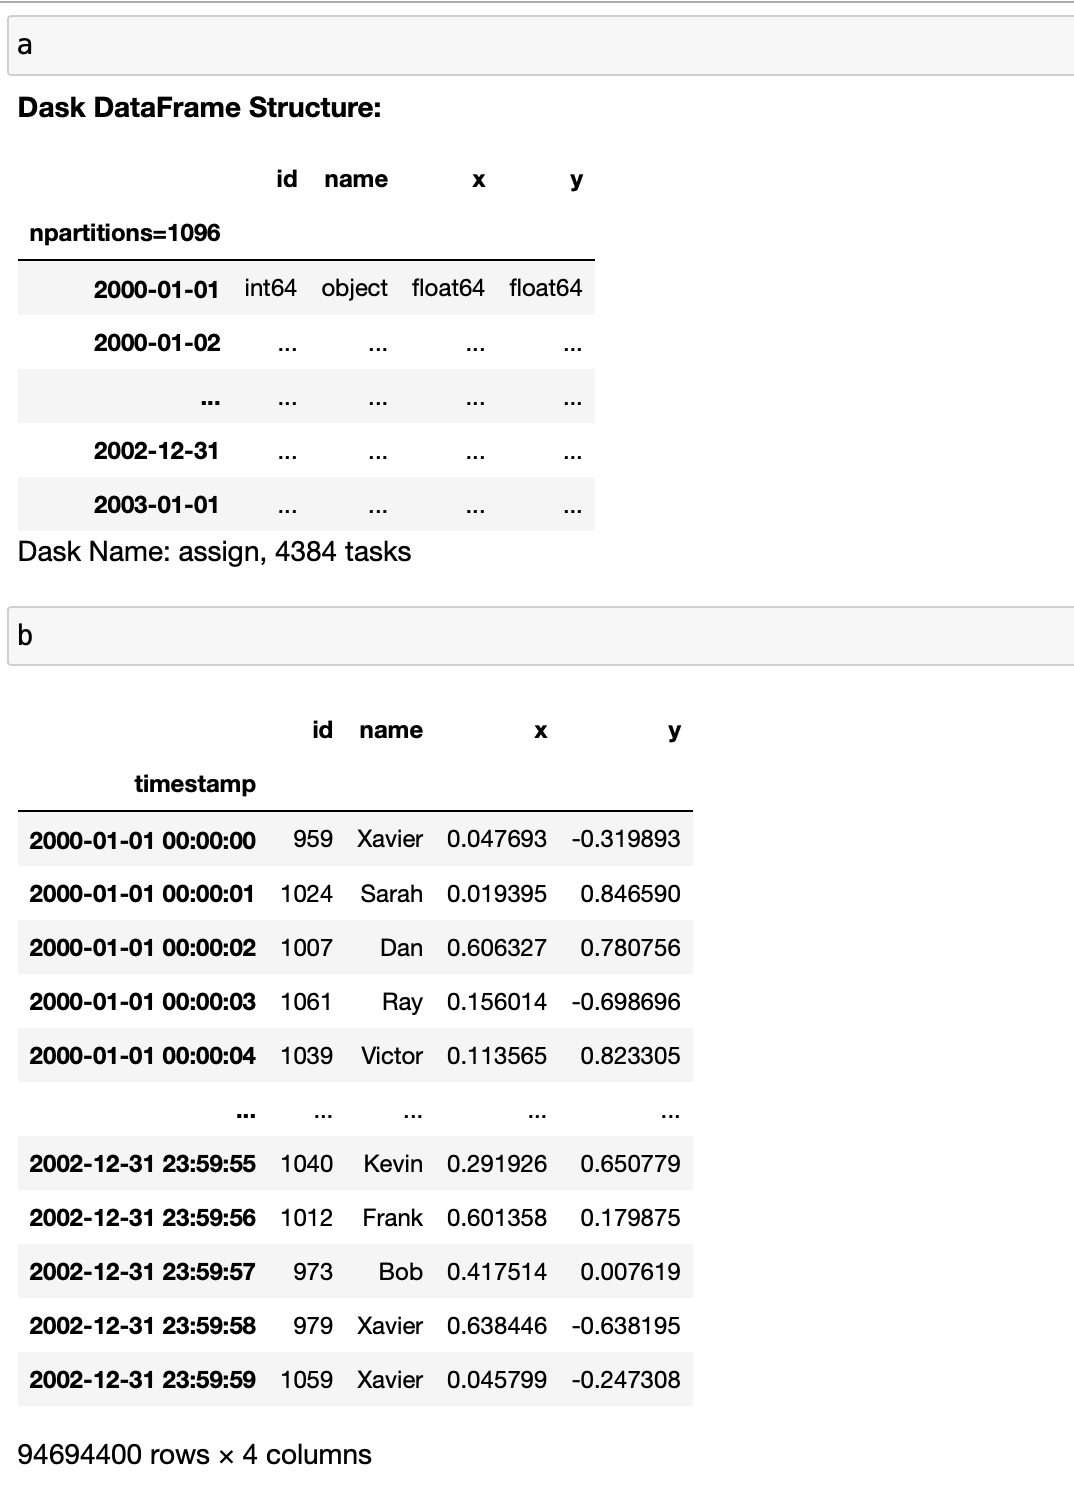 Comparing output for Dask One table showing placeholders and a second one showing values.and Pandas